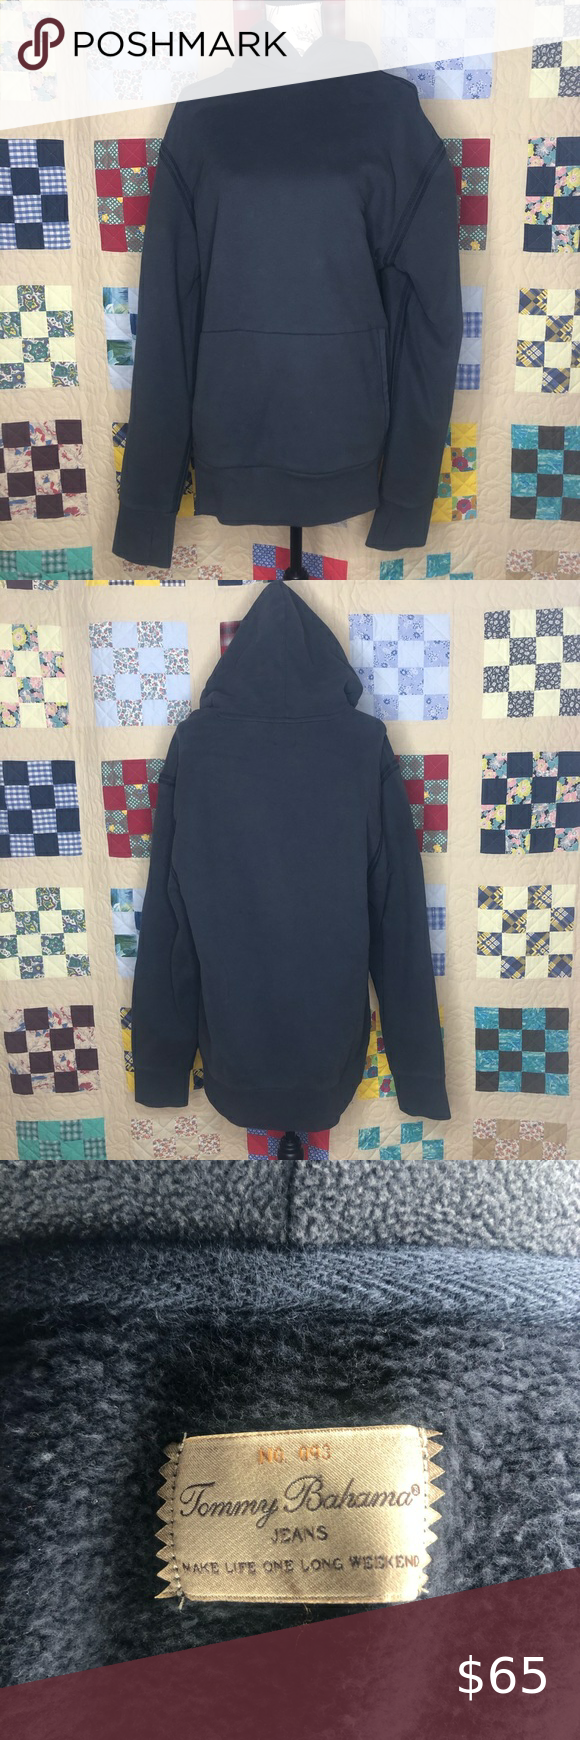 Tommy Bahama Hoodie Size Xl Tommy Bahama Hoodie Size Xl Euc Tommy Bahama Shirts Sweatshirts Hoodies Tommy Bahama Shirts Cozy Sweatshirts Red Hoodie Mens [ 1740 x 580 Pixel ]